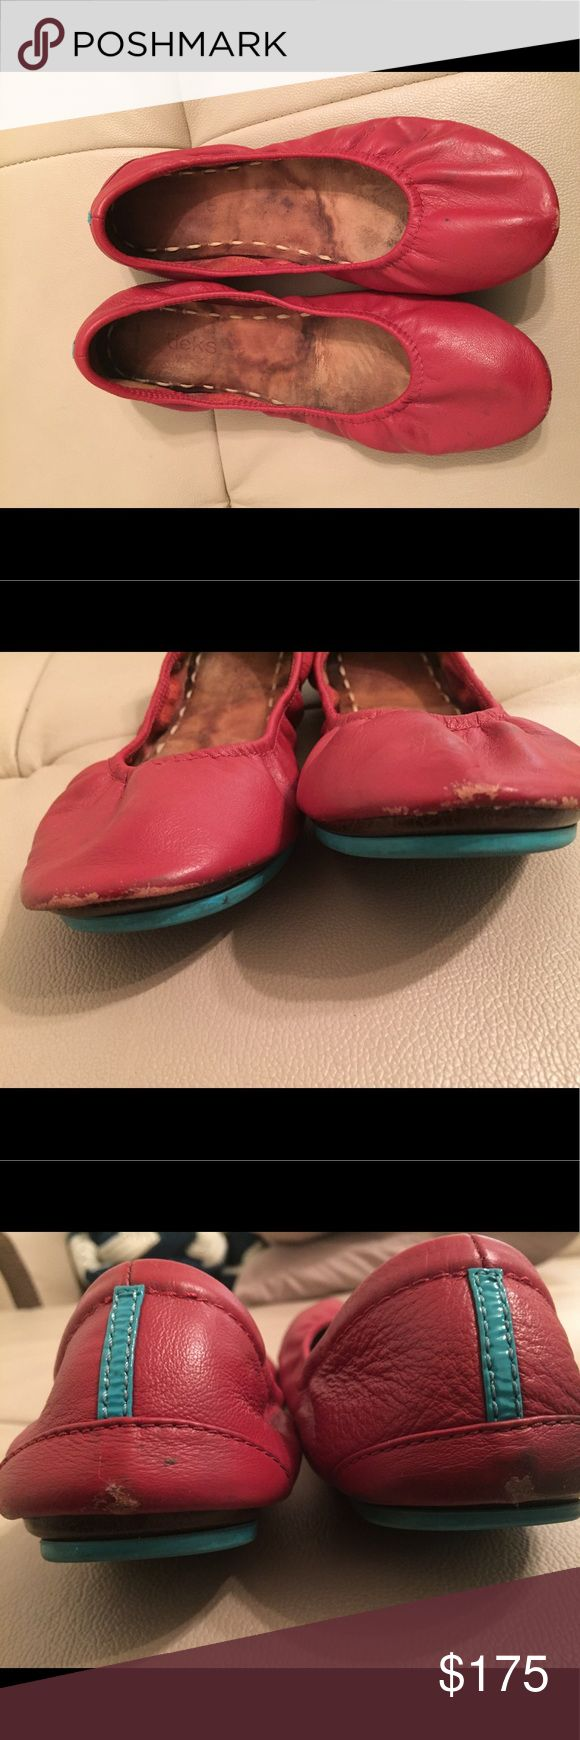 Used Cardinal Red Tieks. Comes with bag, NO box. Cardinal red Tieks. These shoes have been worn MANY times, but they still have lots to give.  Purchase comes with bag but NO box.  ALL SALES ARE FINAL. Tieks Shoes Flats & Loafers